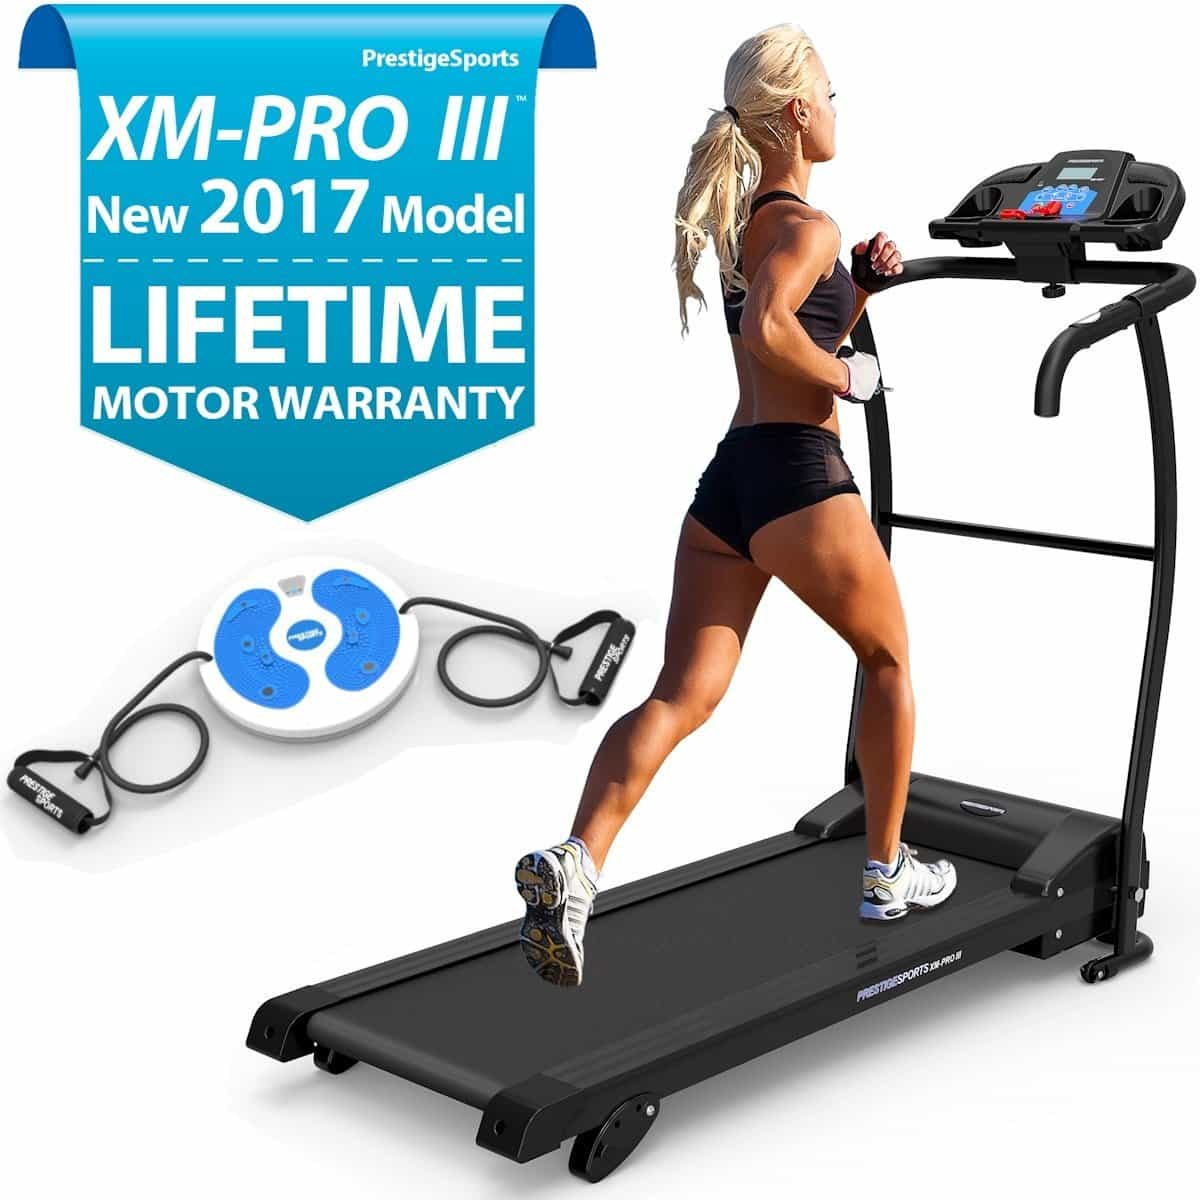 Prestige sports xm pro iii treadmill review 2017 model treadmill reviews uk - Best treadmills for small spaces collection ...